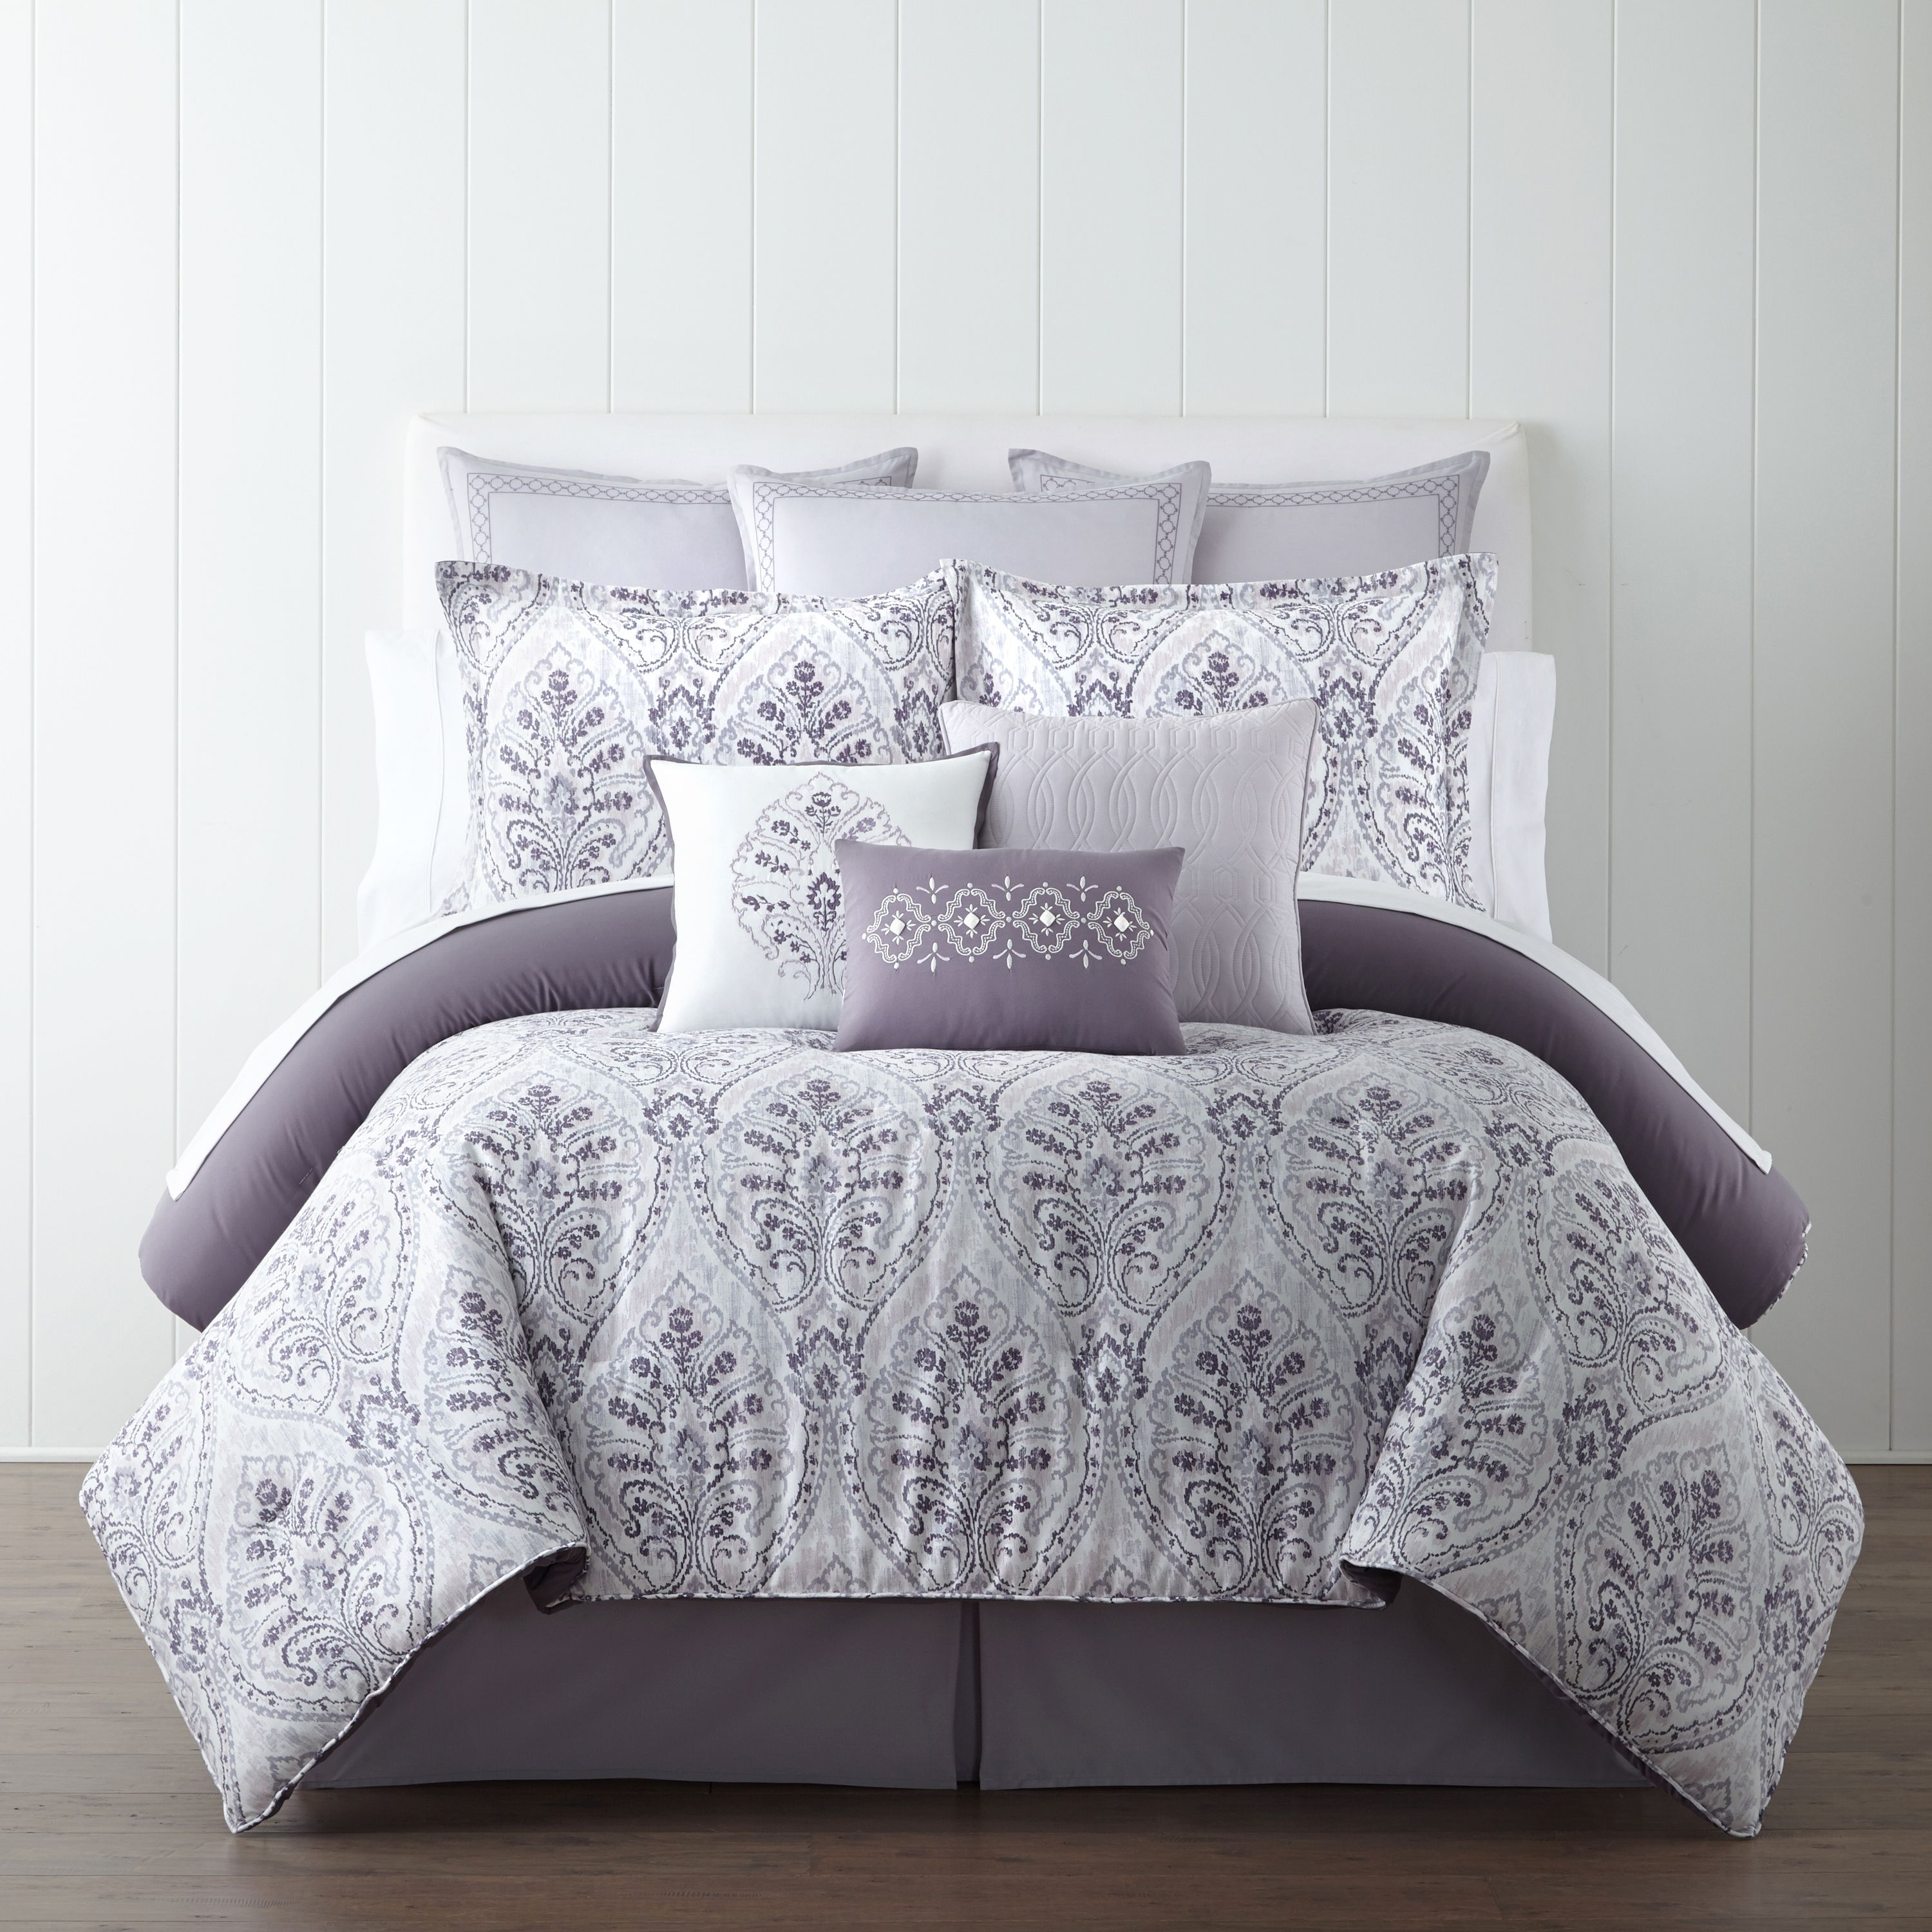 With a sophisticated palette and beautiful damask design, this comforter set will bring warmth and sophistication to your bedroom.